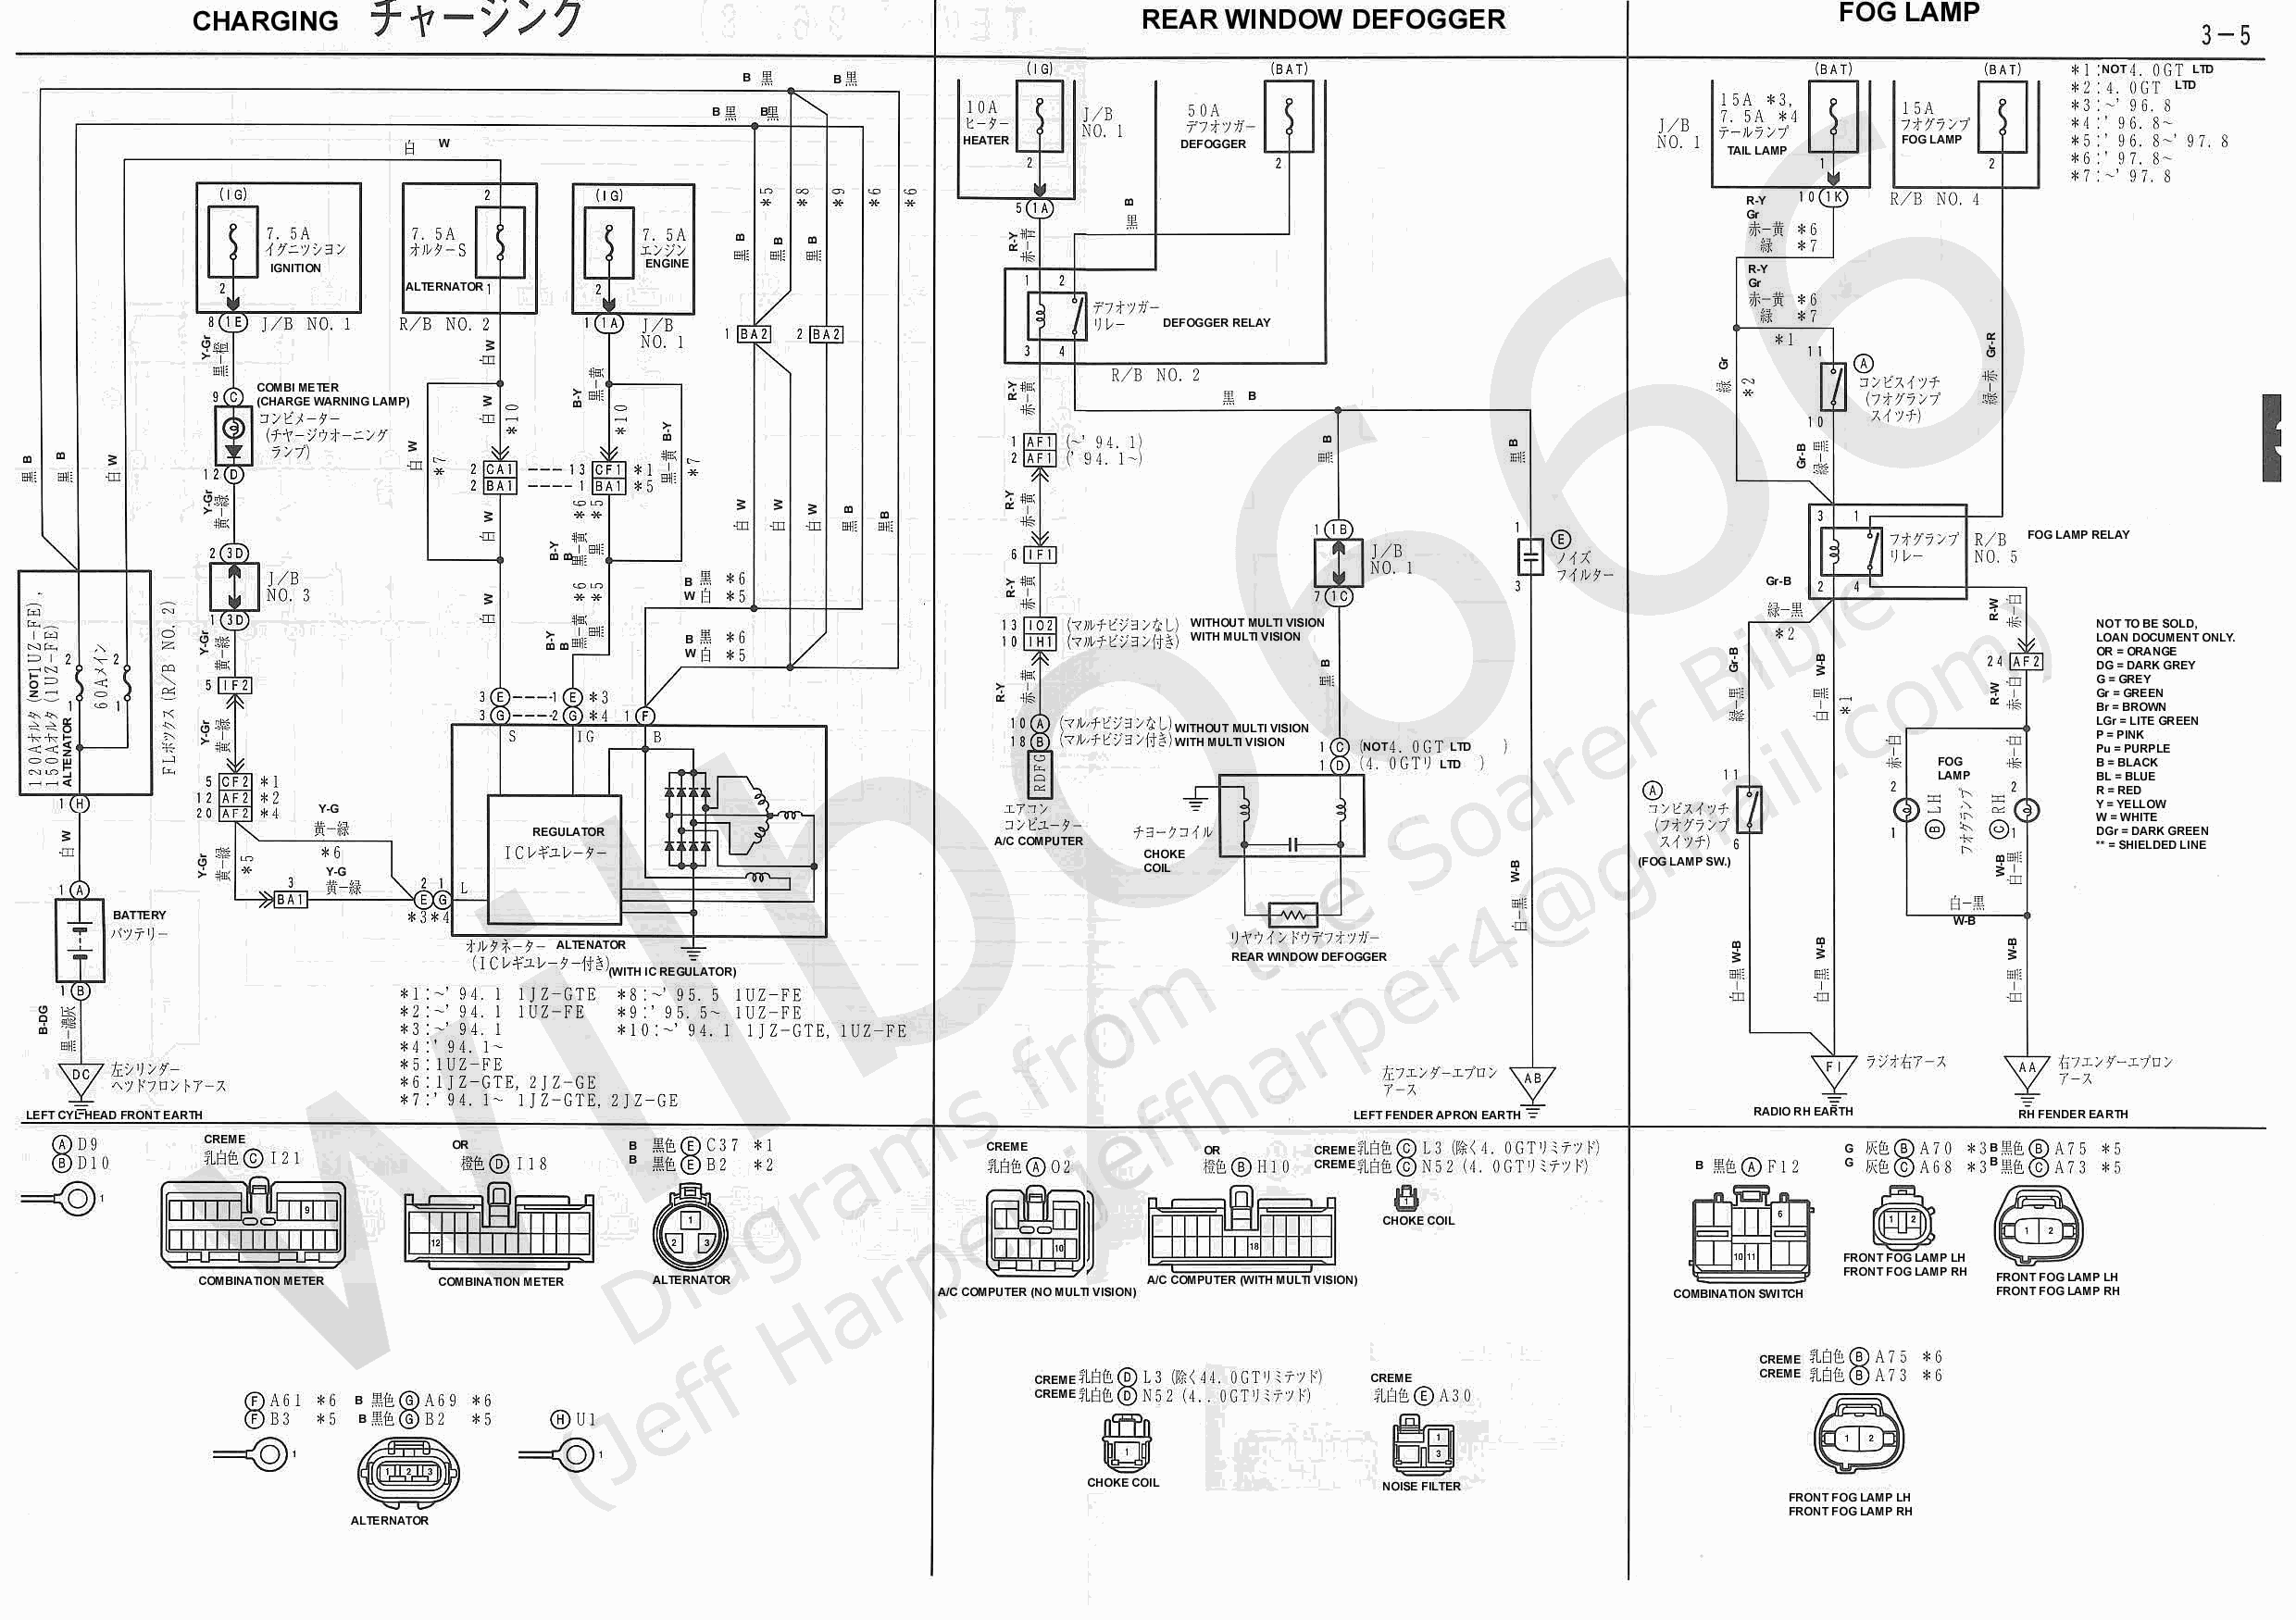 xZZ3x Electrical Wiring Diagram 6737105 3 5?resize\\\\\\\\\\\\\\\\\\\\\\\\\\\\\\\\\\\\\\\\\\\\\\\\\\\\\\\\\\\\\\\\\\\\\\\\\\\\\\\\\\\\\\\\\\\\\\\=665%2C469 3sge beams wiring diagram race lexus is200 beams \u2022 wiring diagrams ae86 wiring harness at soozxer.org